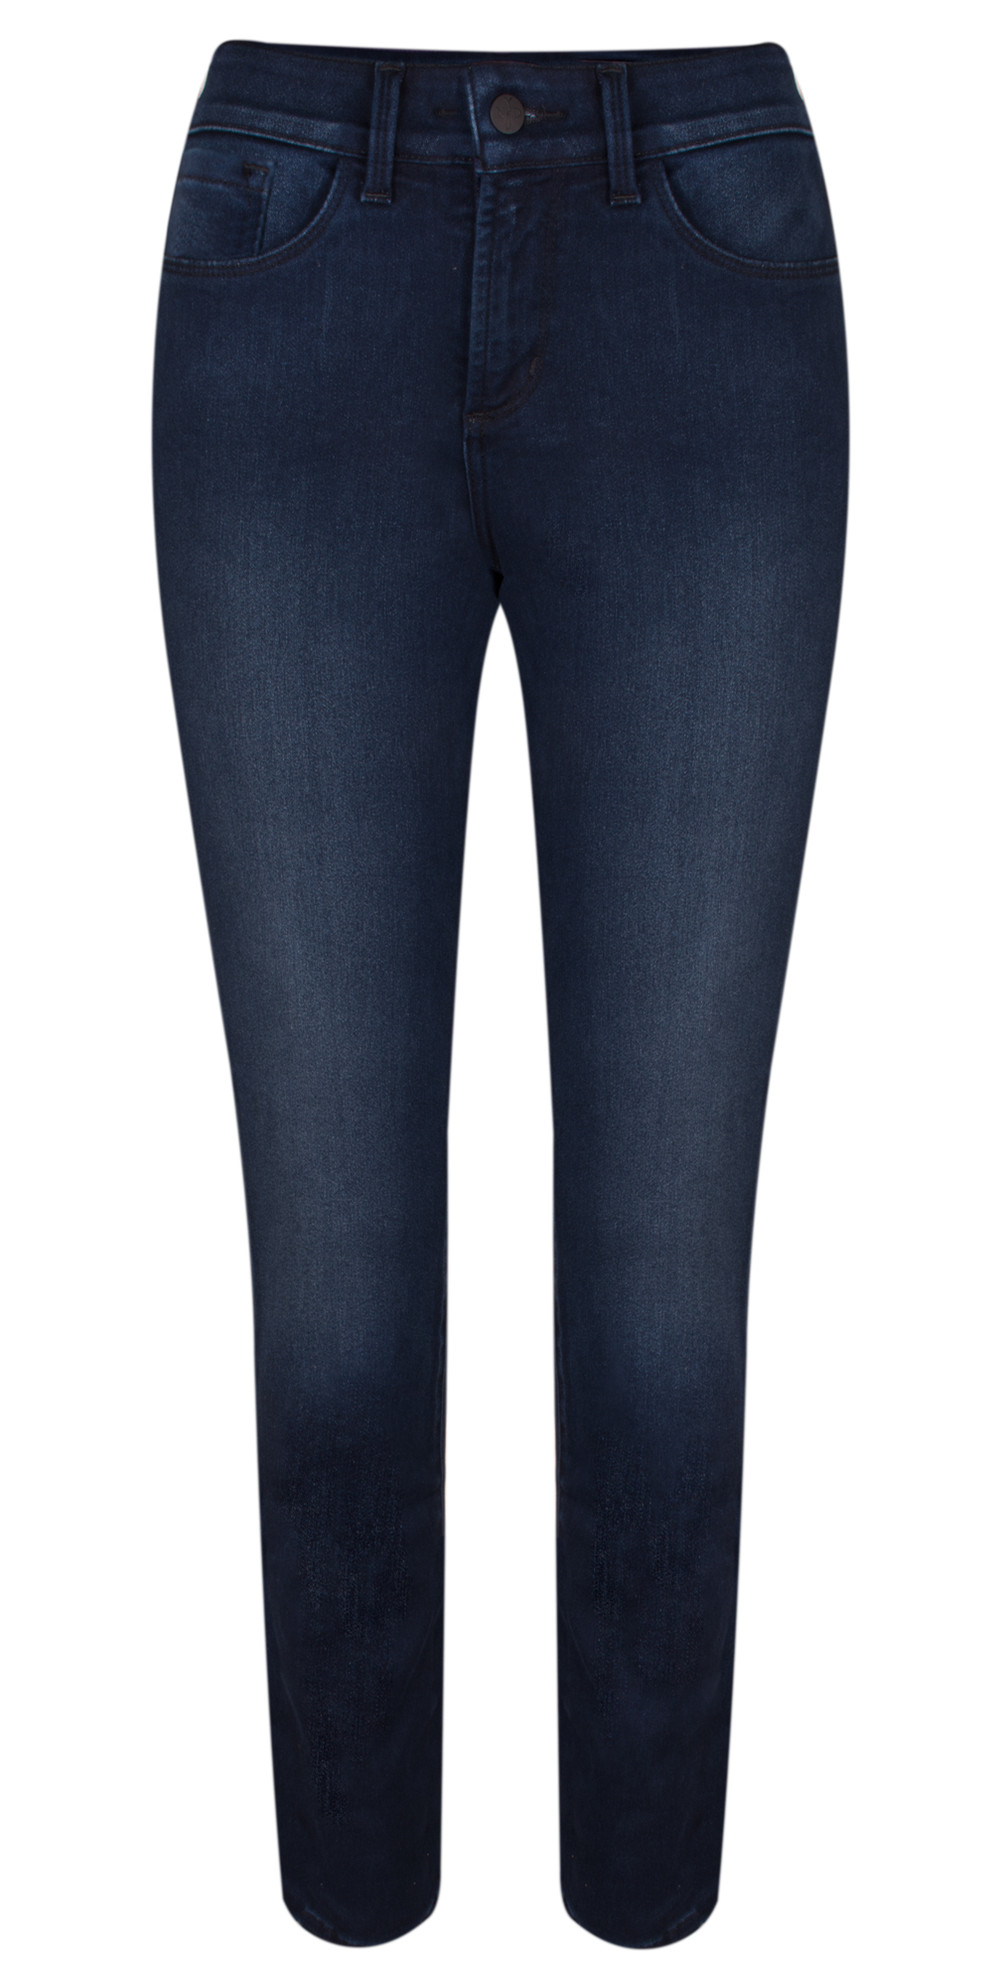 Nydj Alina Legging Jeans In Norwell Wash Navy Main Image